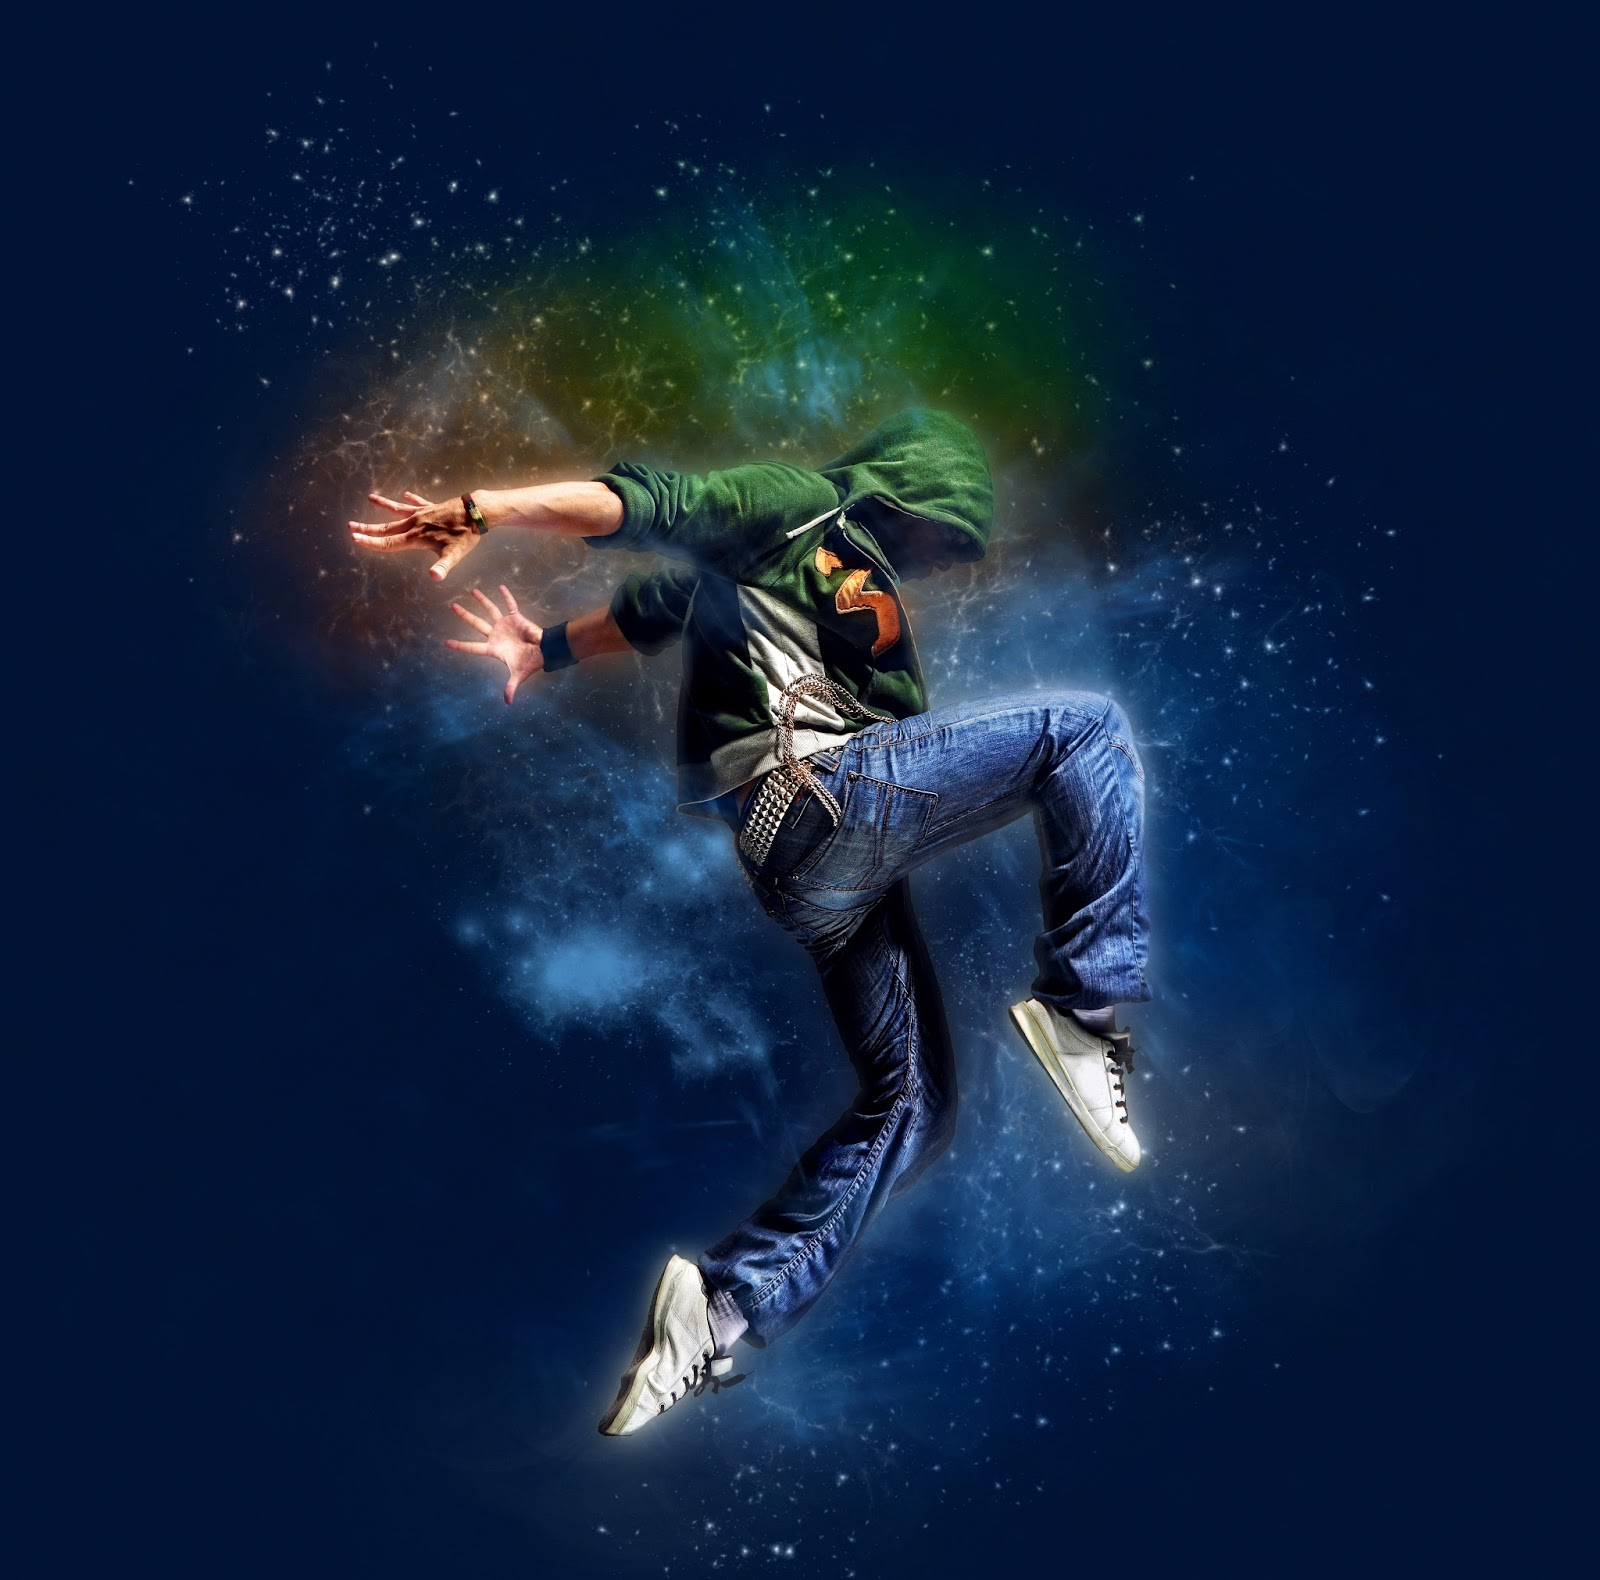 Creative Space Photo Effect In Photoshop CS6 Extended ...